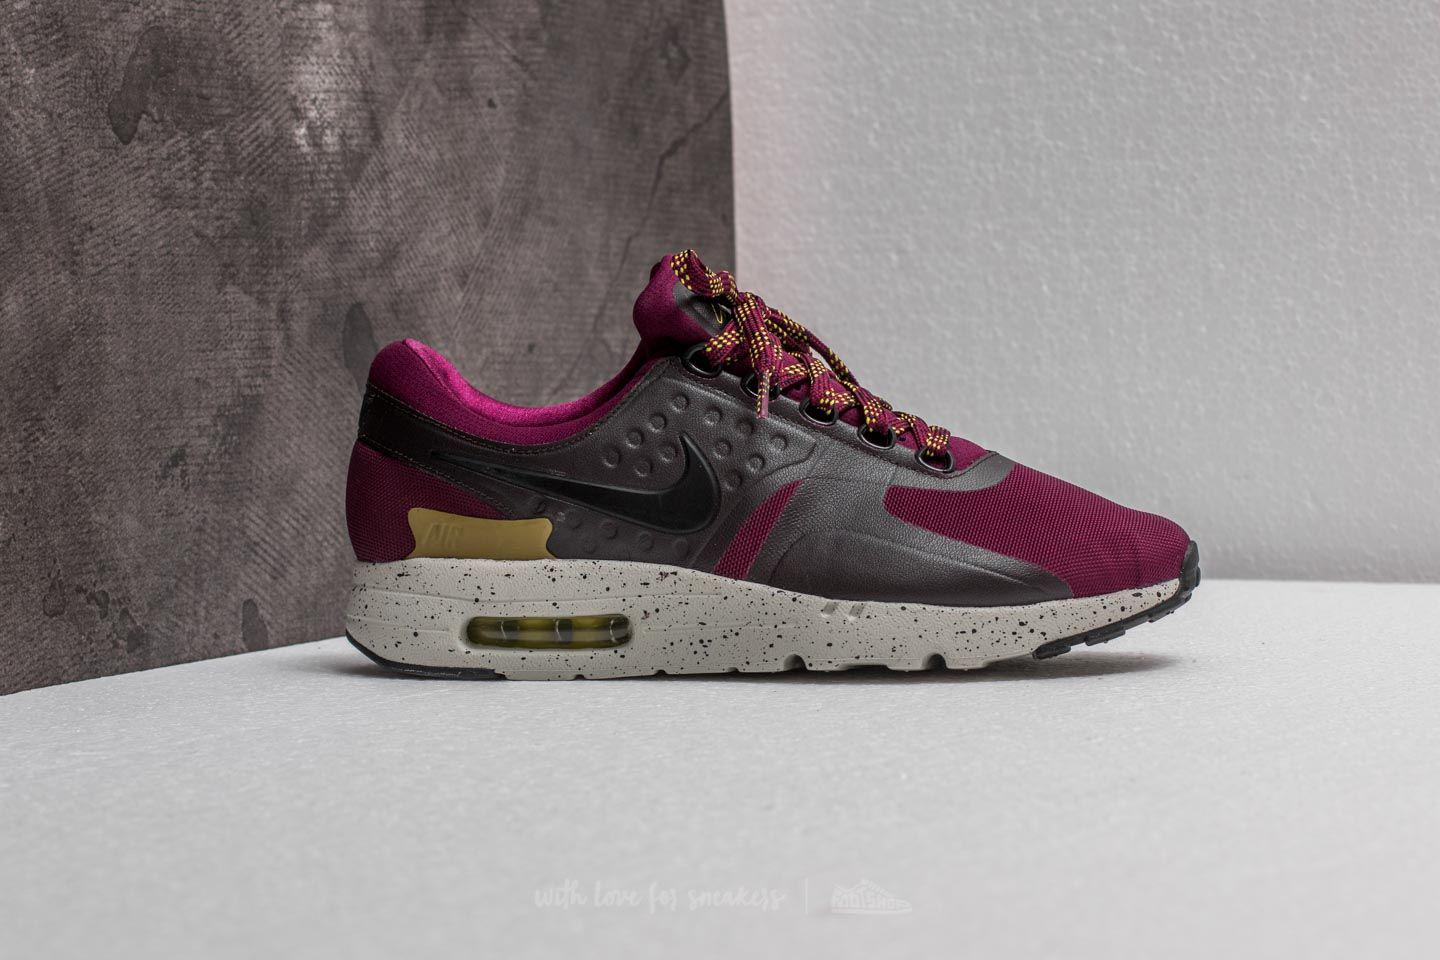 3144e508cff Lyst - Nike Air Max Zero Se Bordeaux  Black-velvet Brown for Men